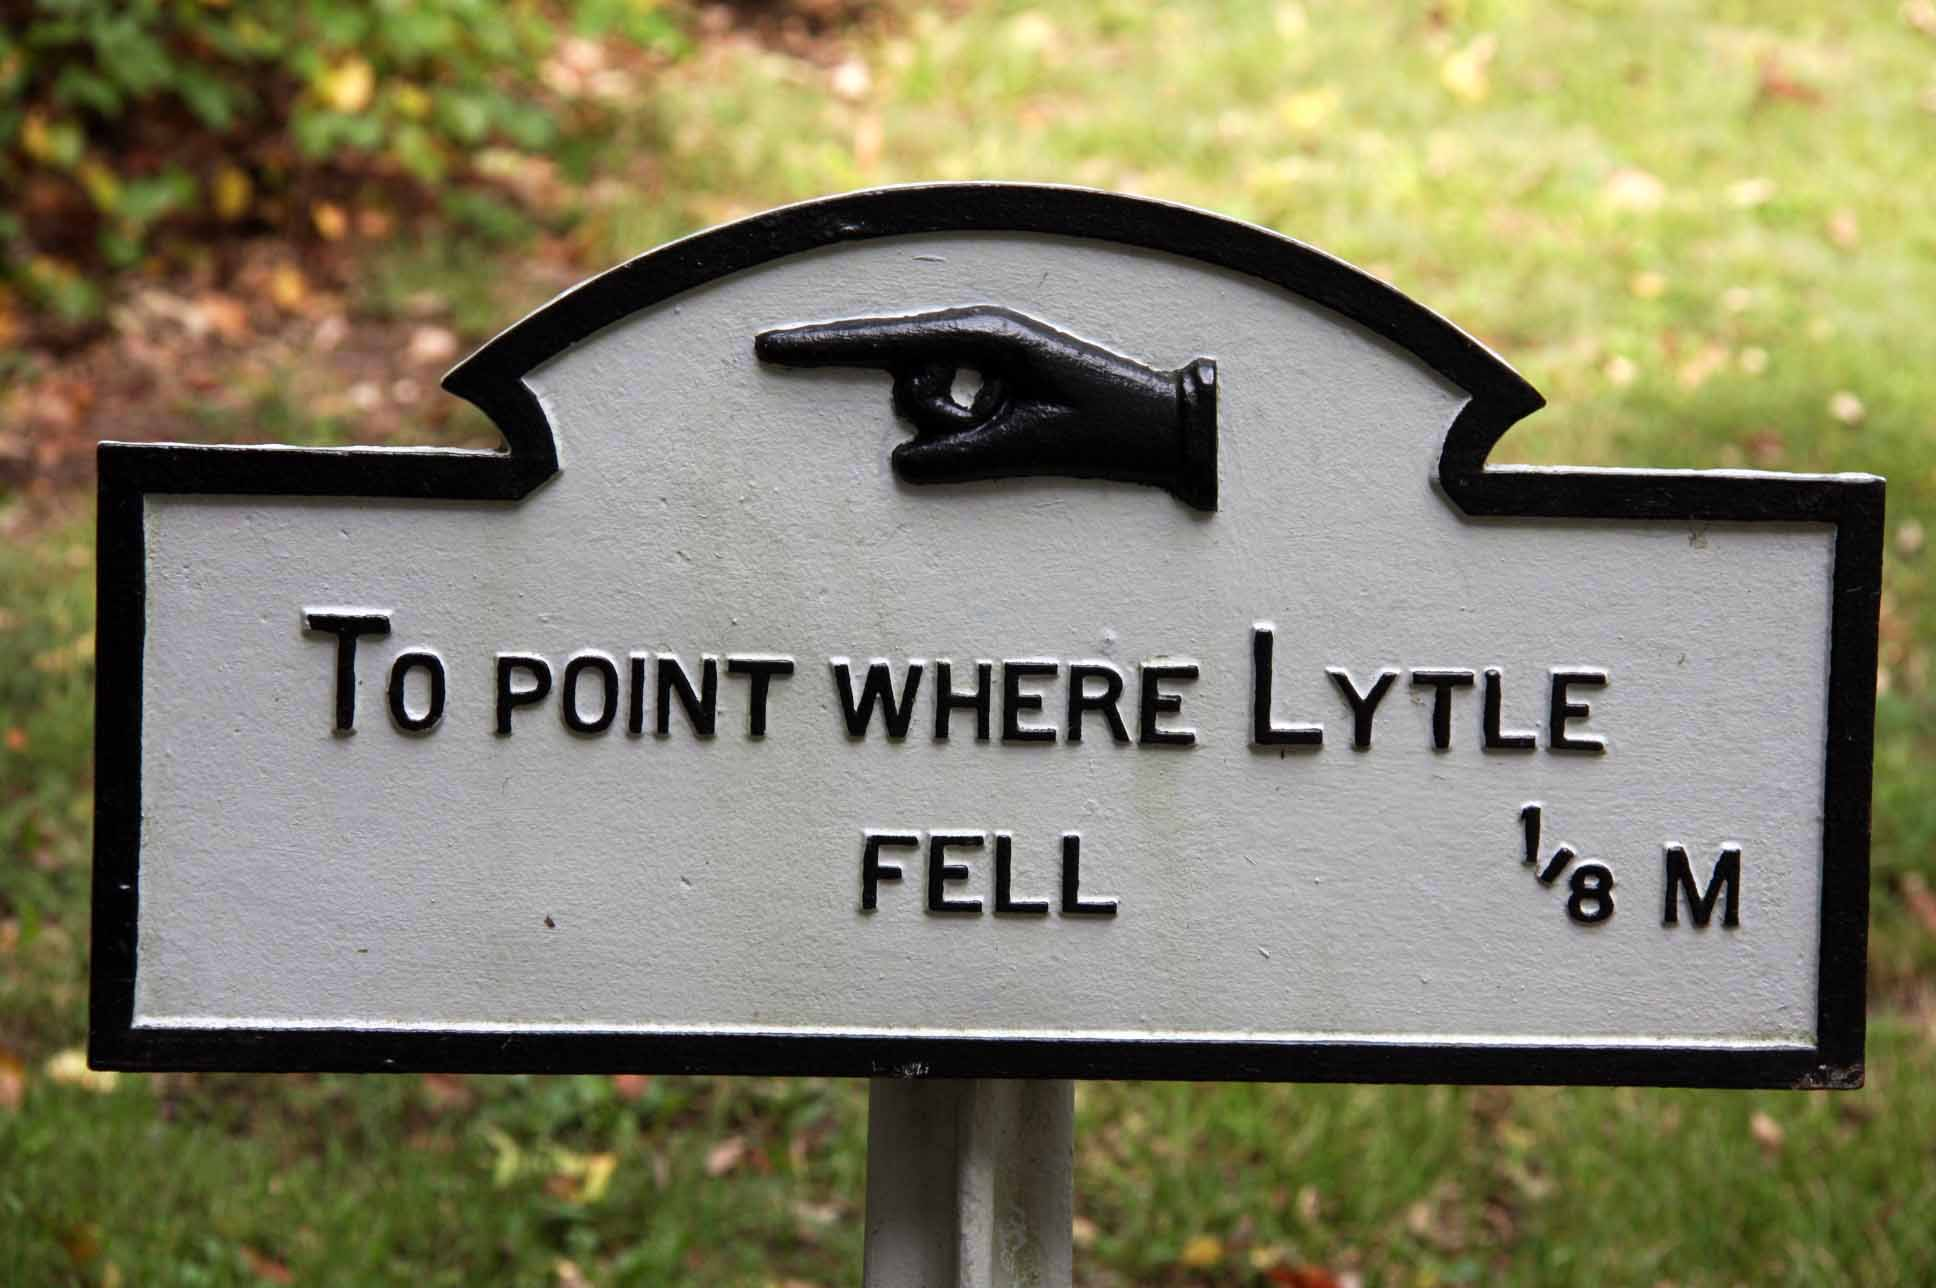 Point where Lytle Fell, click photo to enlarge.